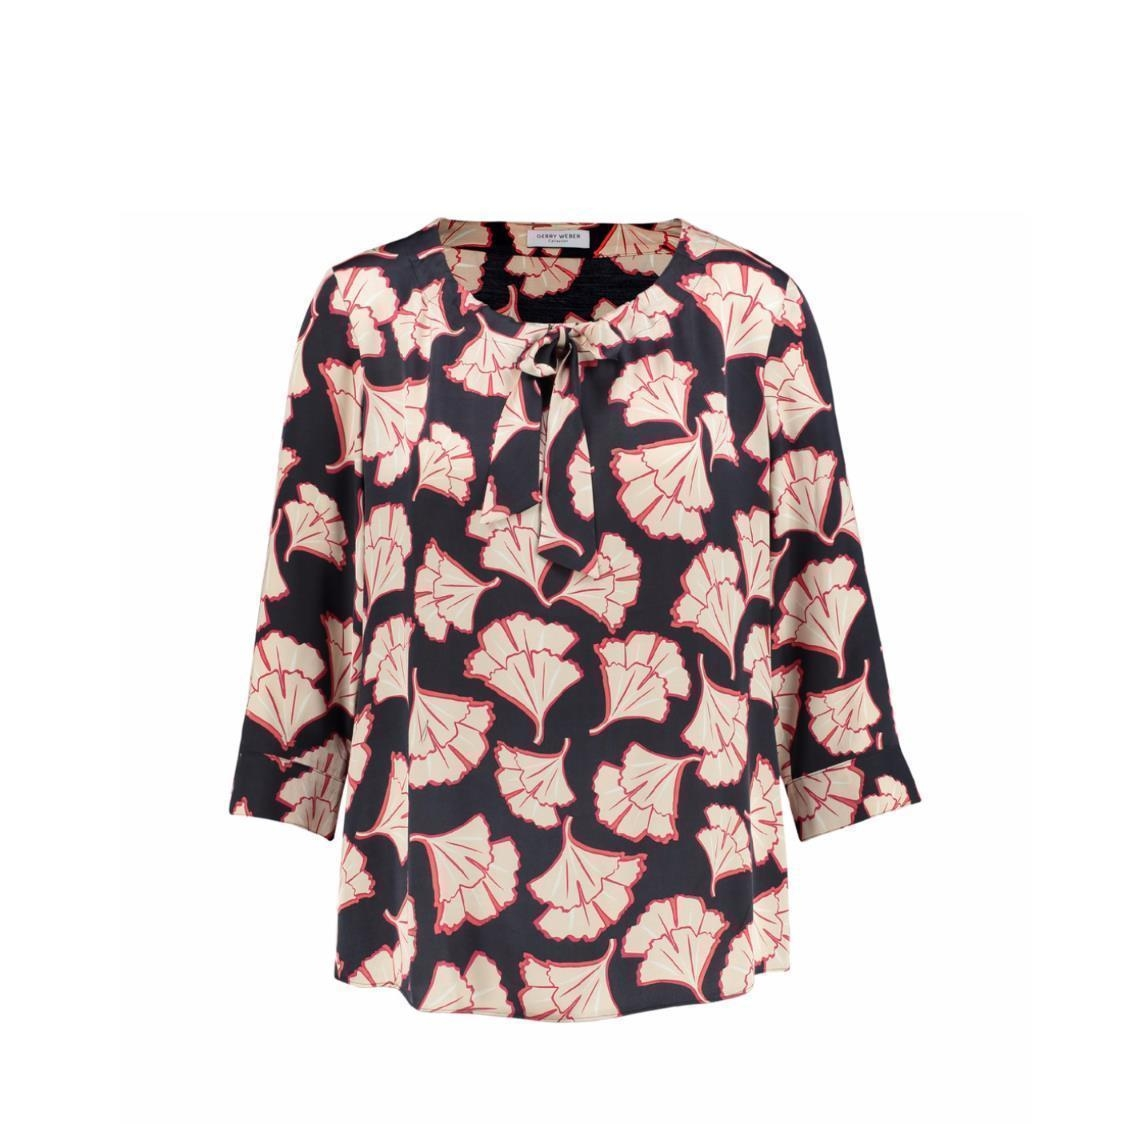 34 Sleeve Blouse with Bow